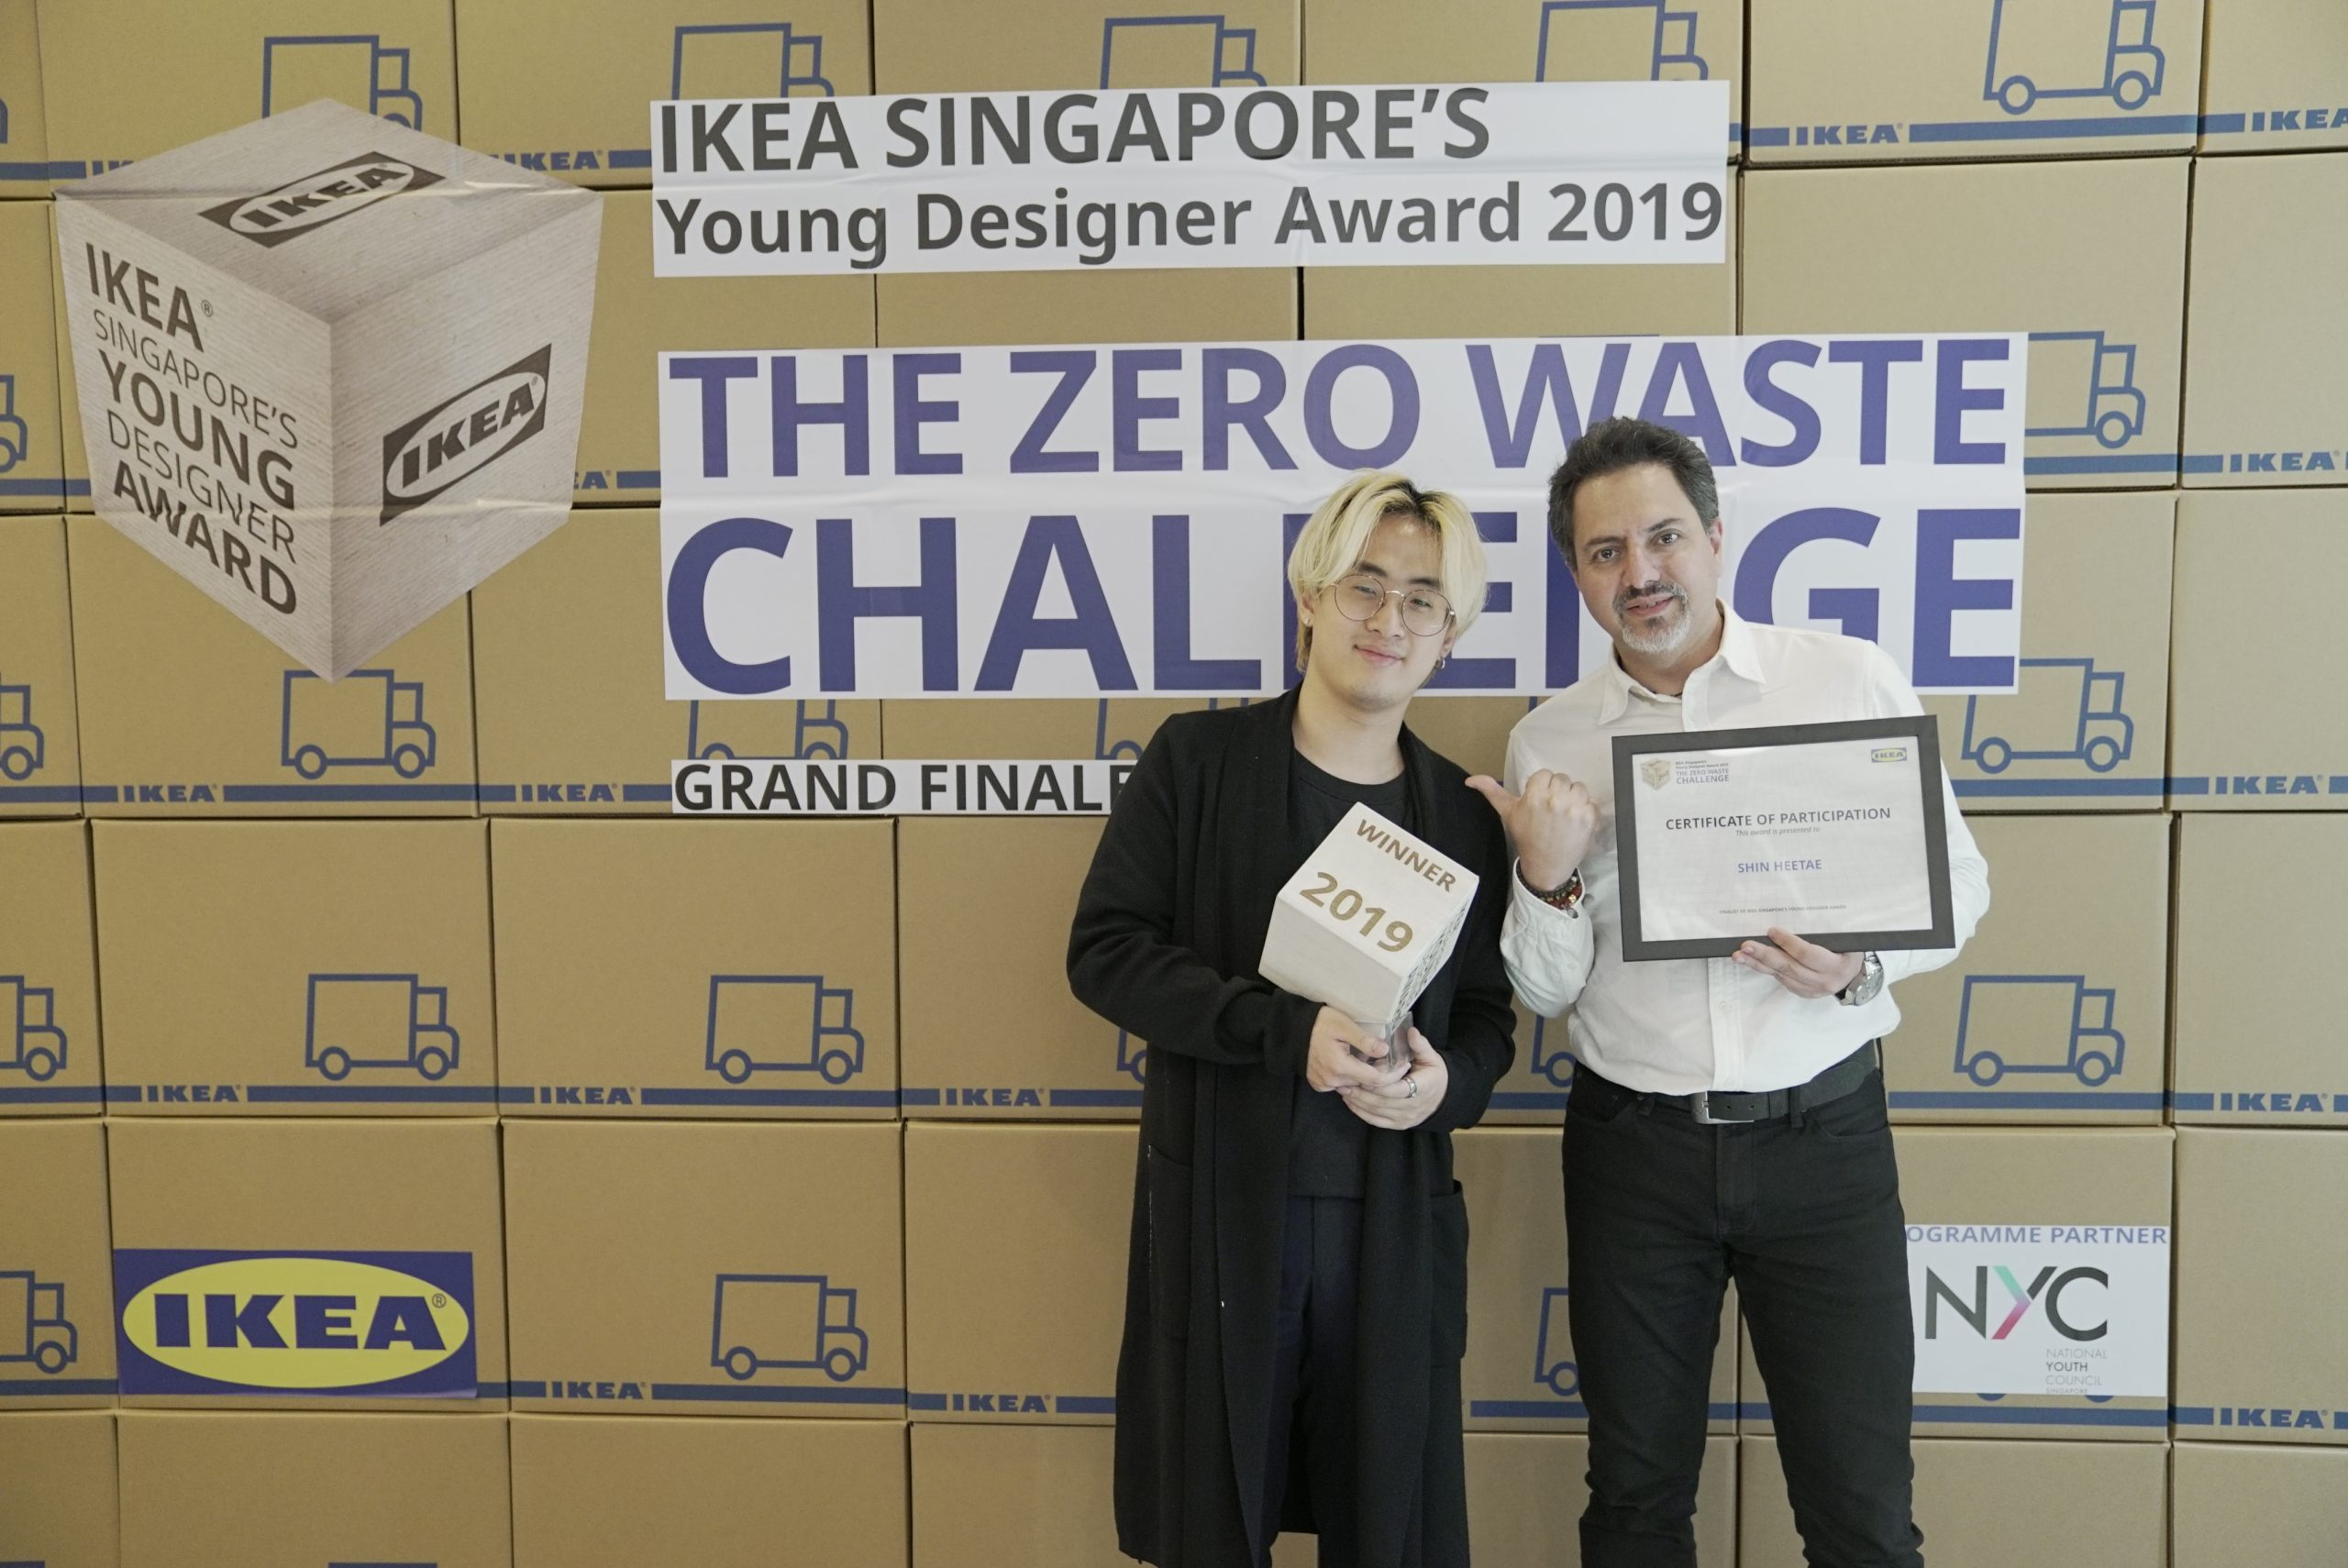 winner of ikea singapore young designer award 2019 raffles product designer shin hee tae with lecturer hector salazar